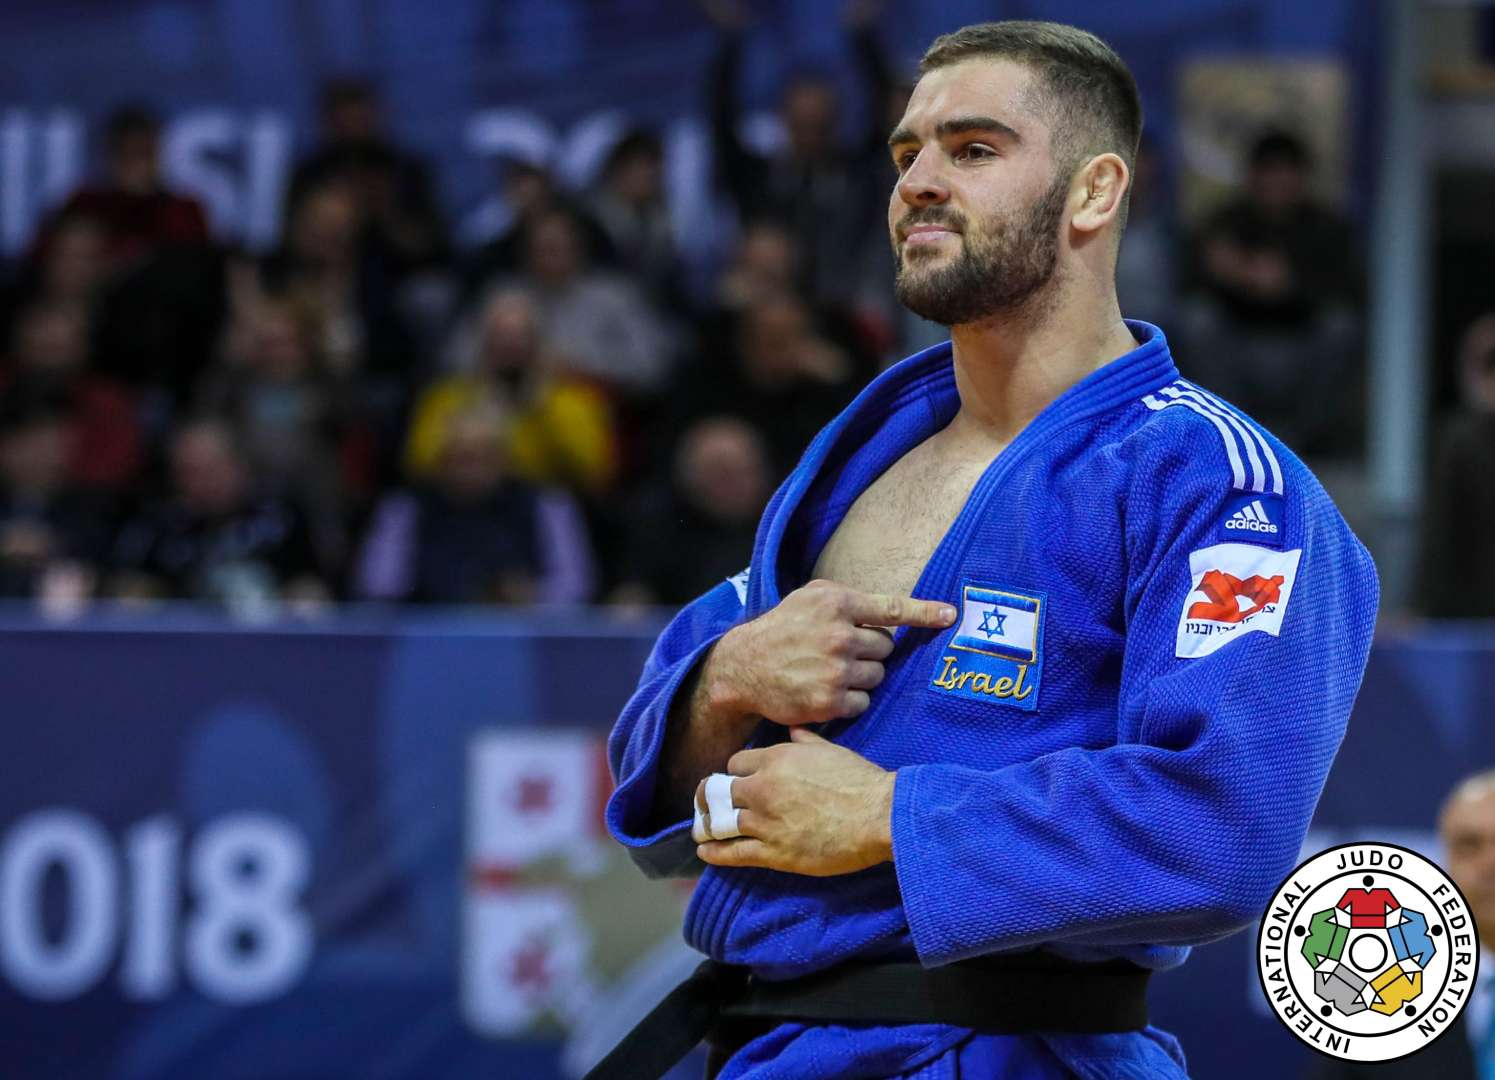 20180401_tbilisi_ijf_final_100_paltchik_peter_isr_flag